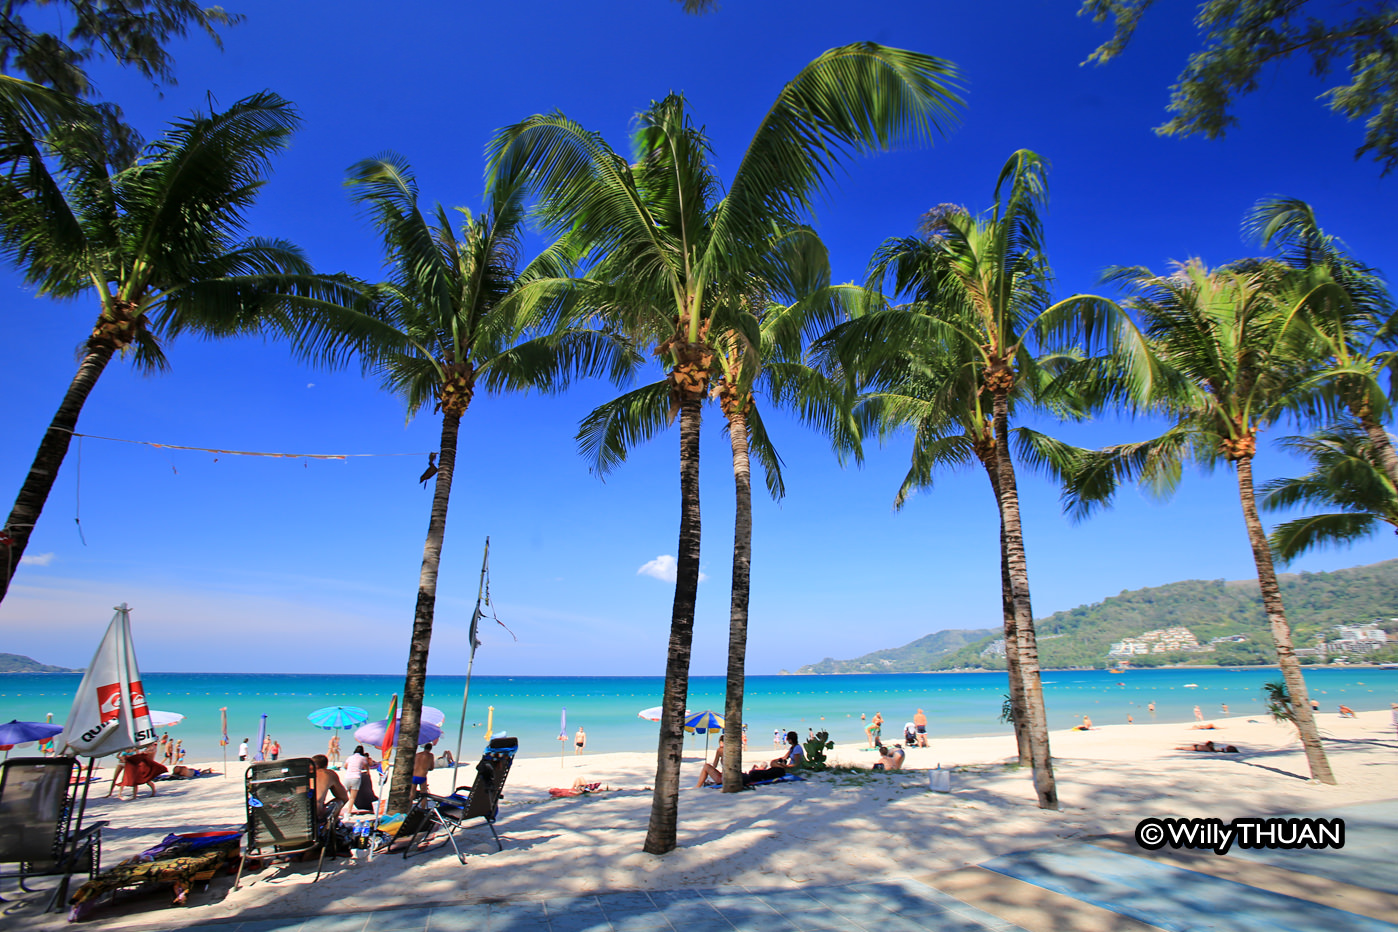 Things To Do In Phuket Thailand: Patong Beach Phuket Thailand